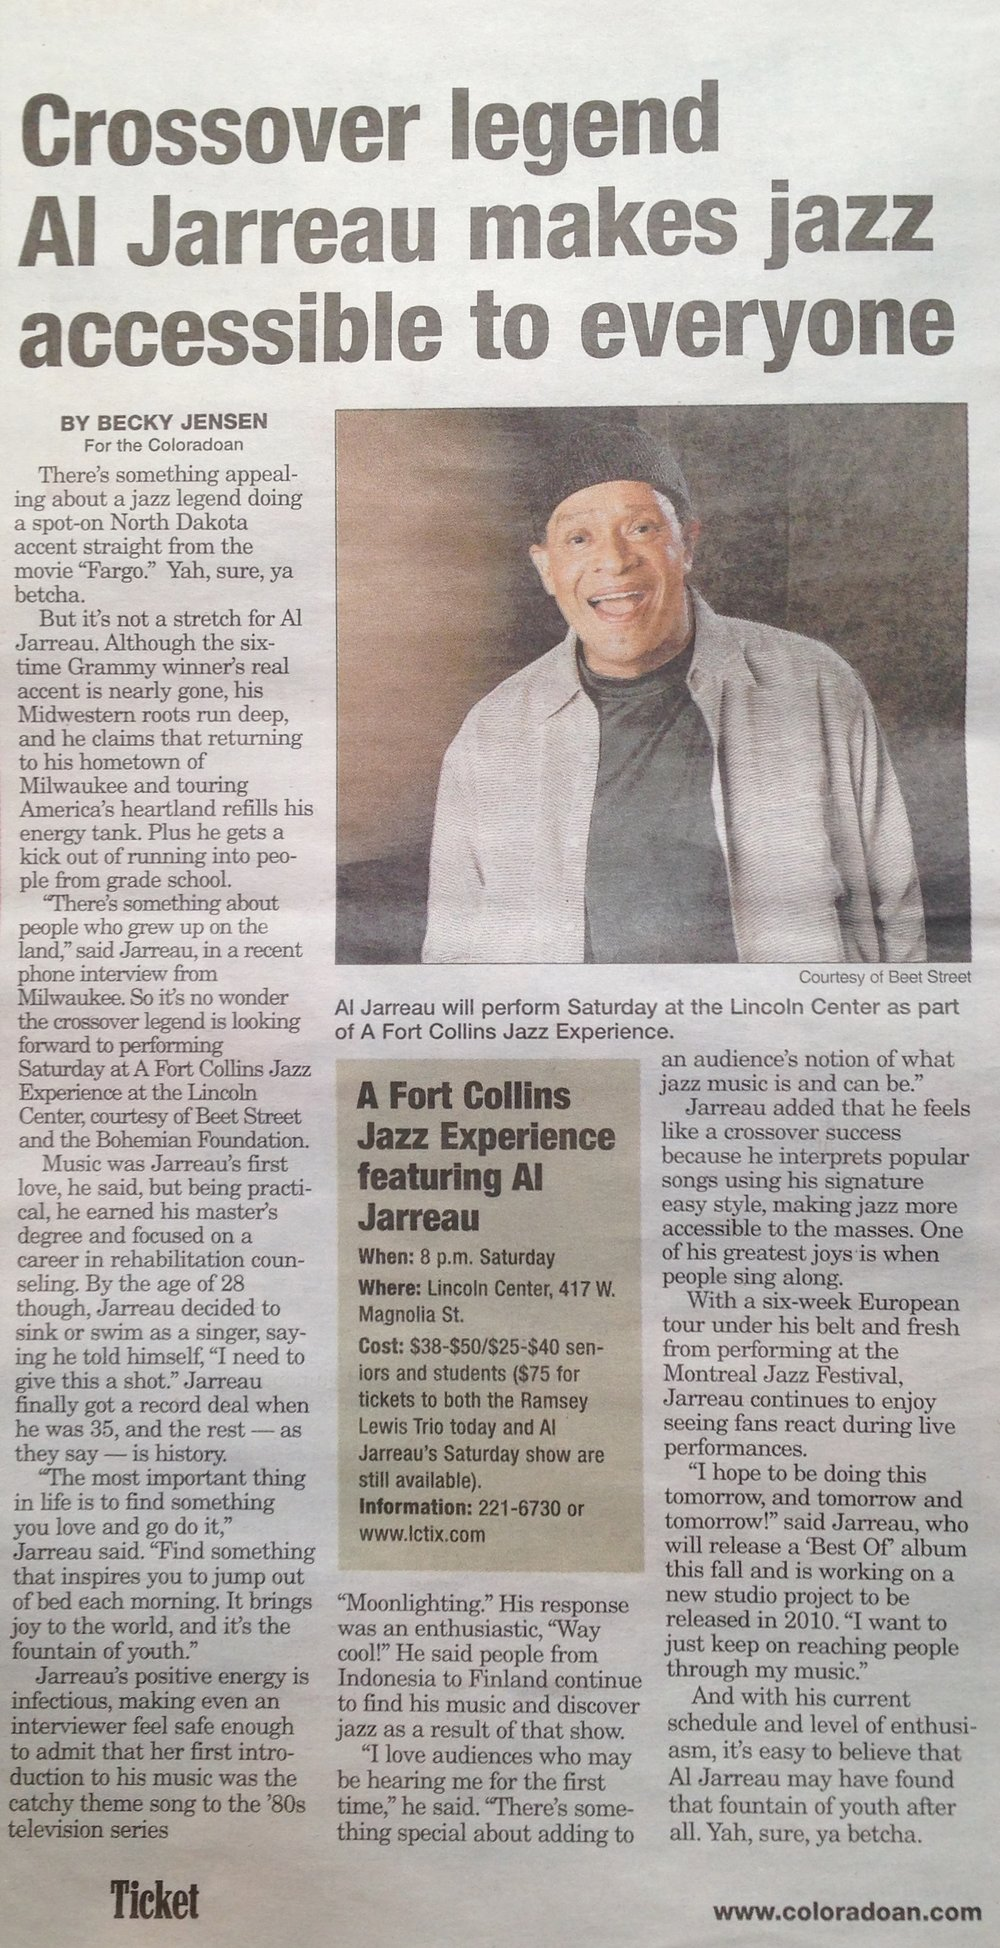 Crossover Hit Al Jarreau Makes Jazz Accessible to Everyone